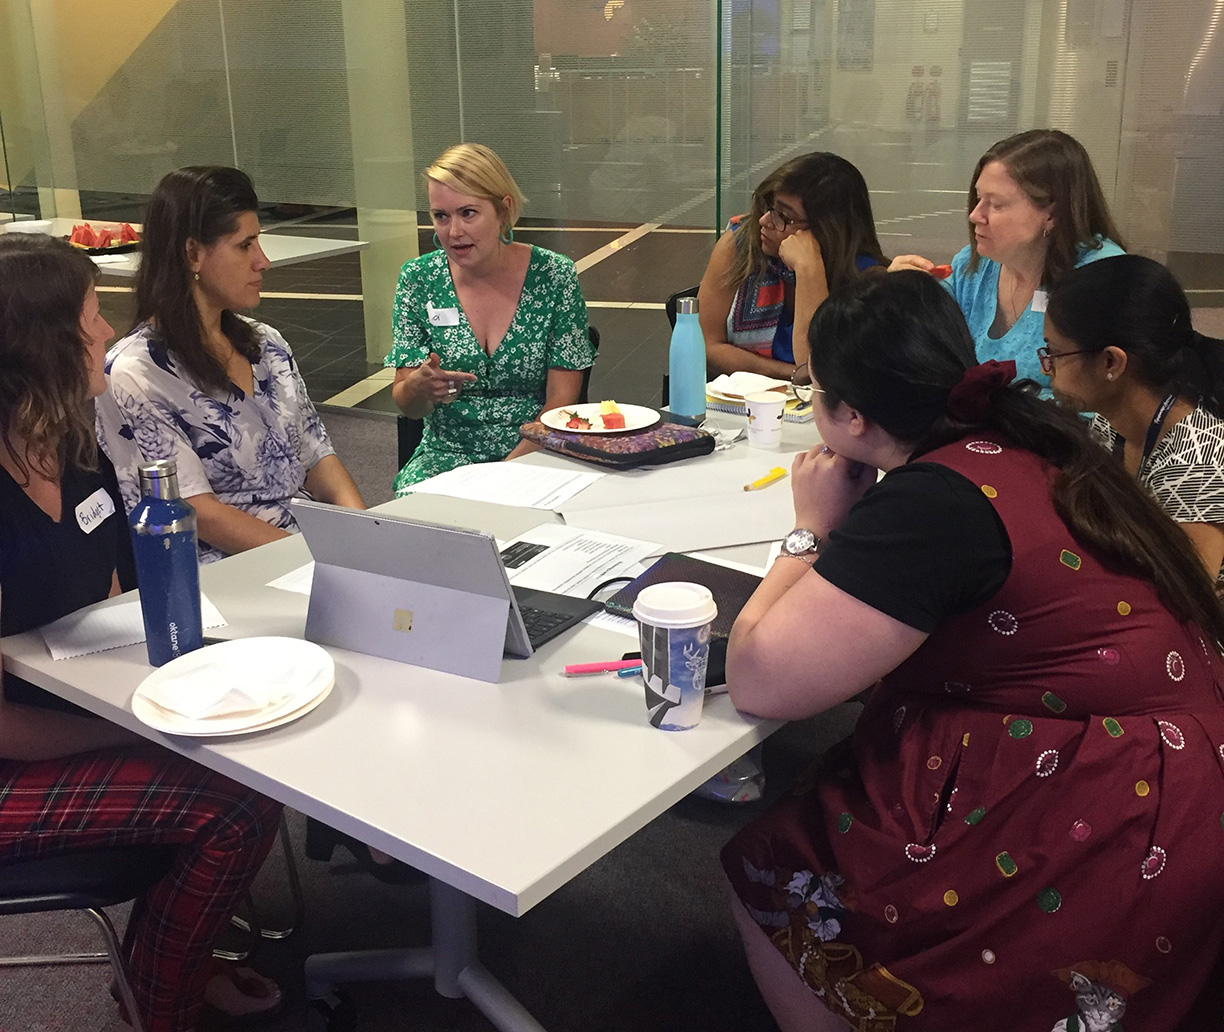 Photo of Zel Iscel in discussion with team about policies and procedures for accessibility in the workplace.